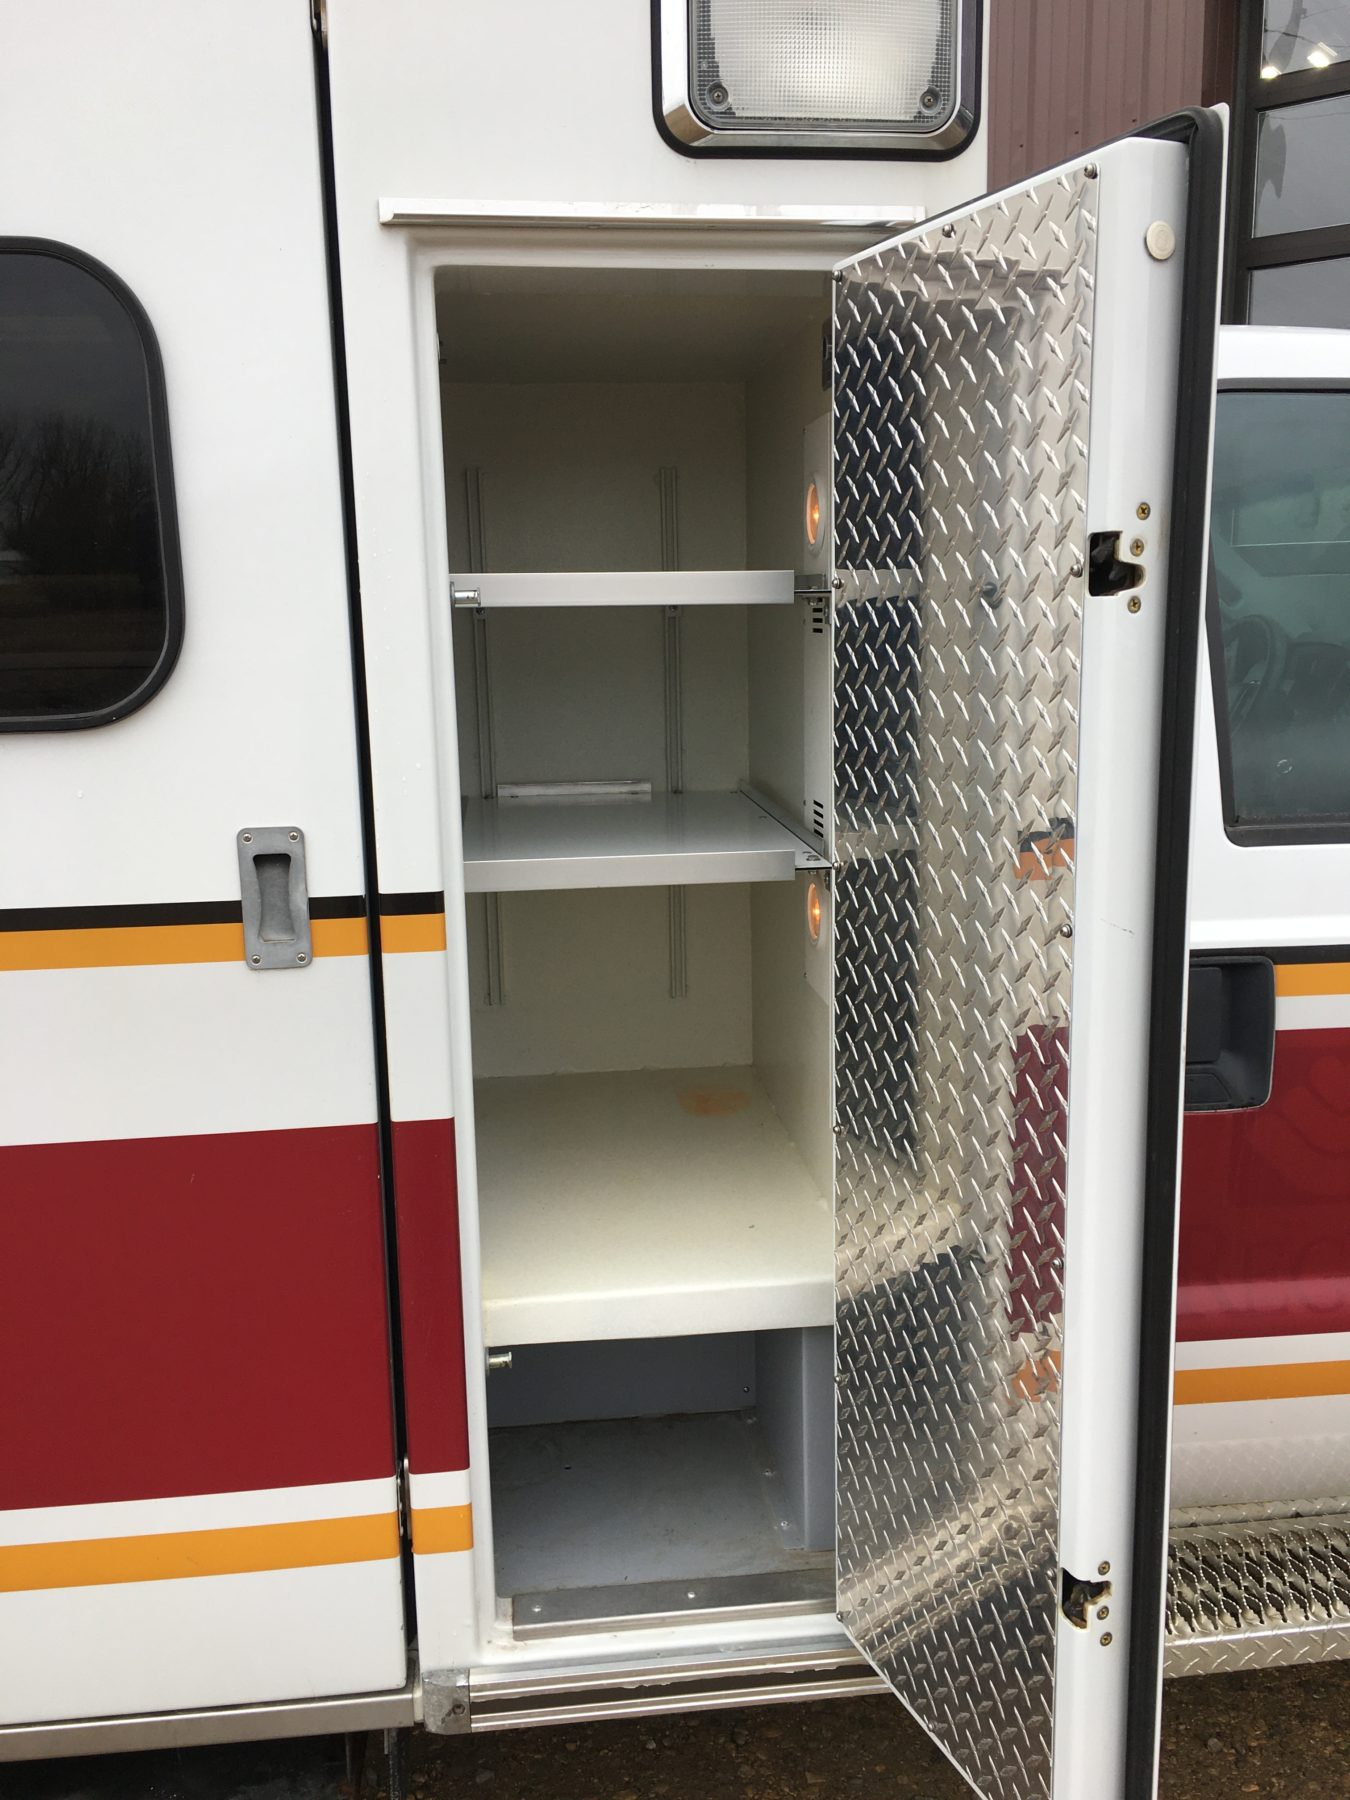 2012 Ford F350 4x4 Type 1 Ambulance For Sale – Picture 7